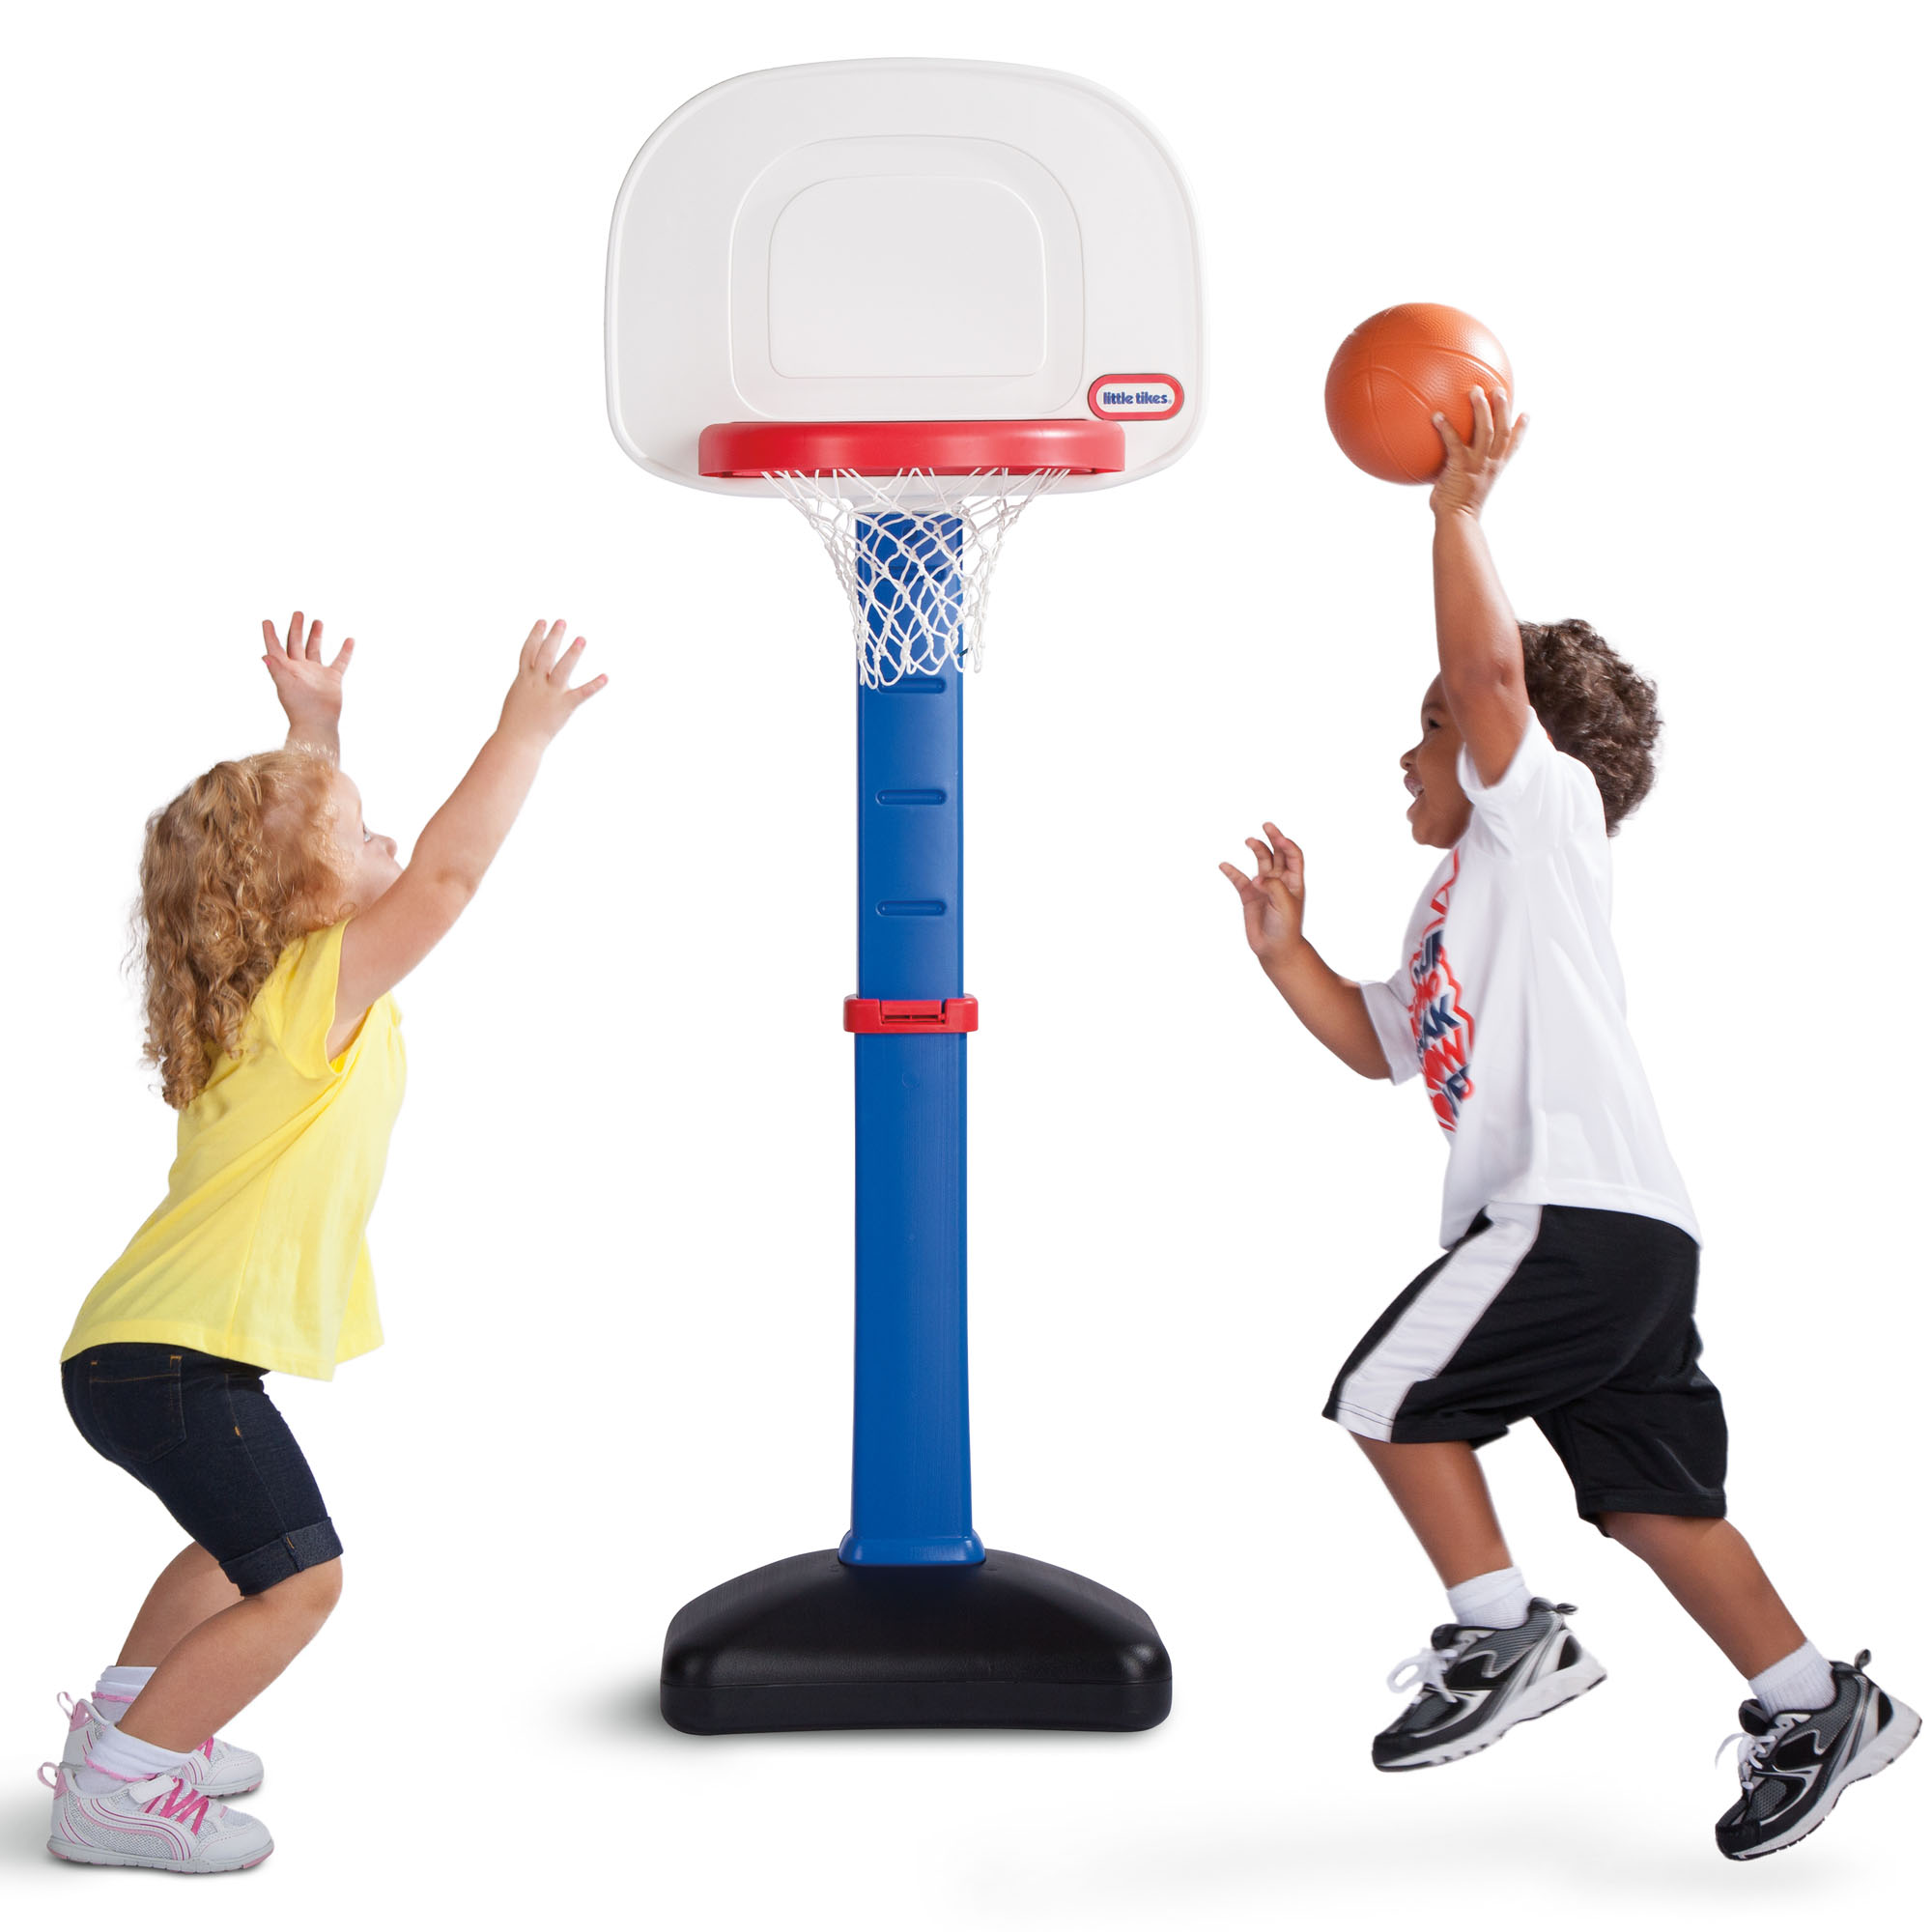 Little Tikes TotSports Easy Score Toy Basketball Set Only $24.97